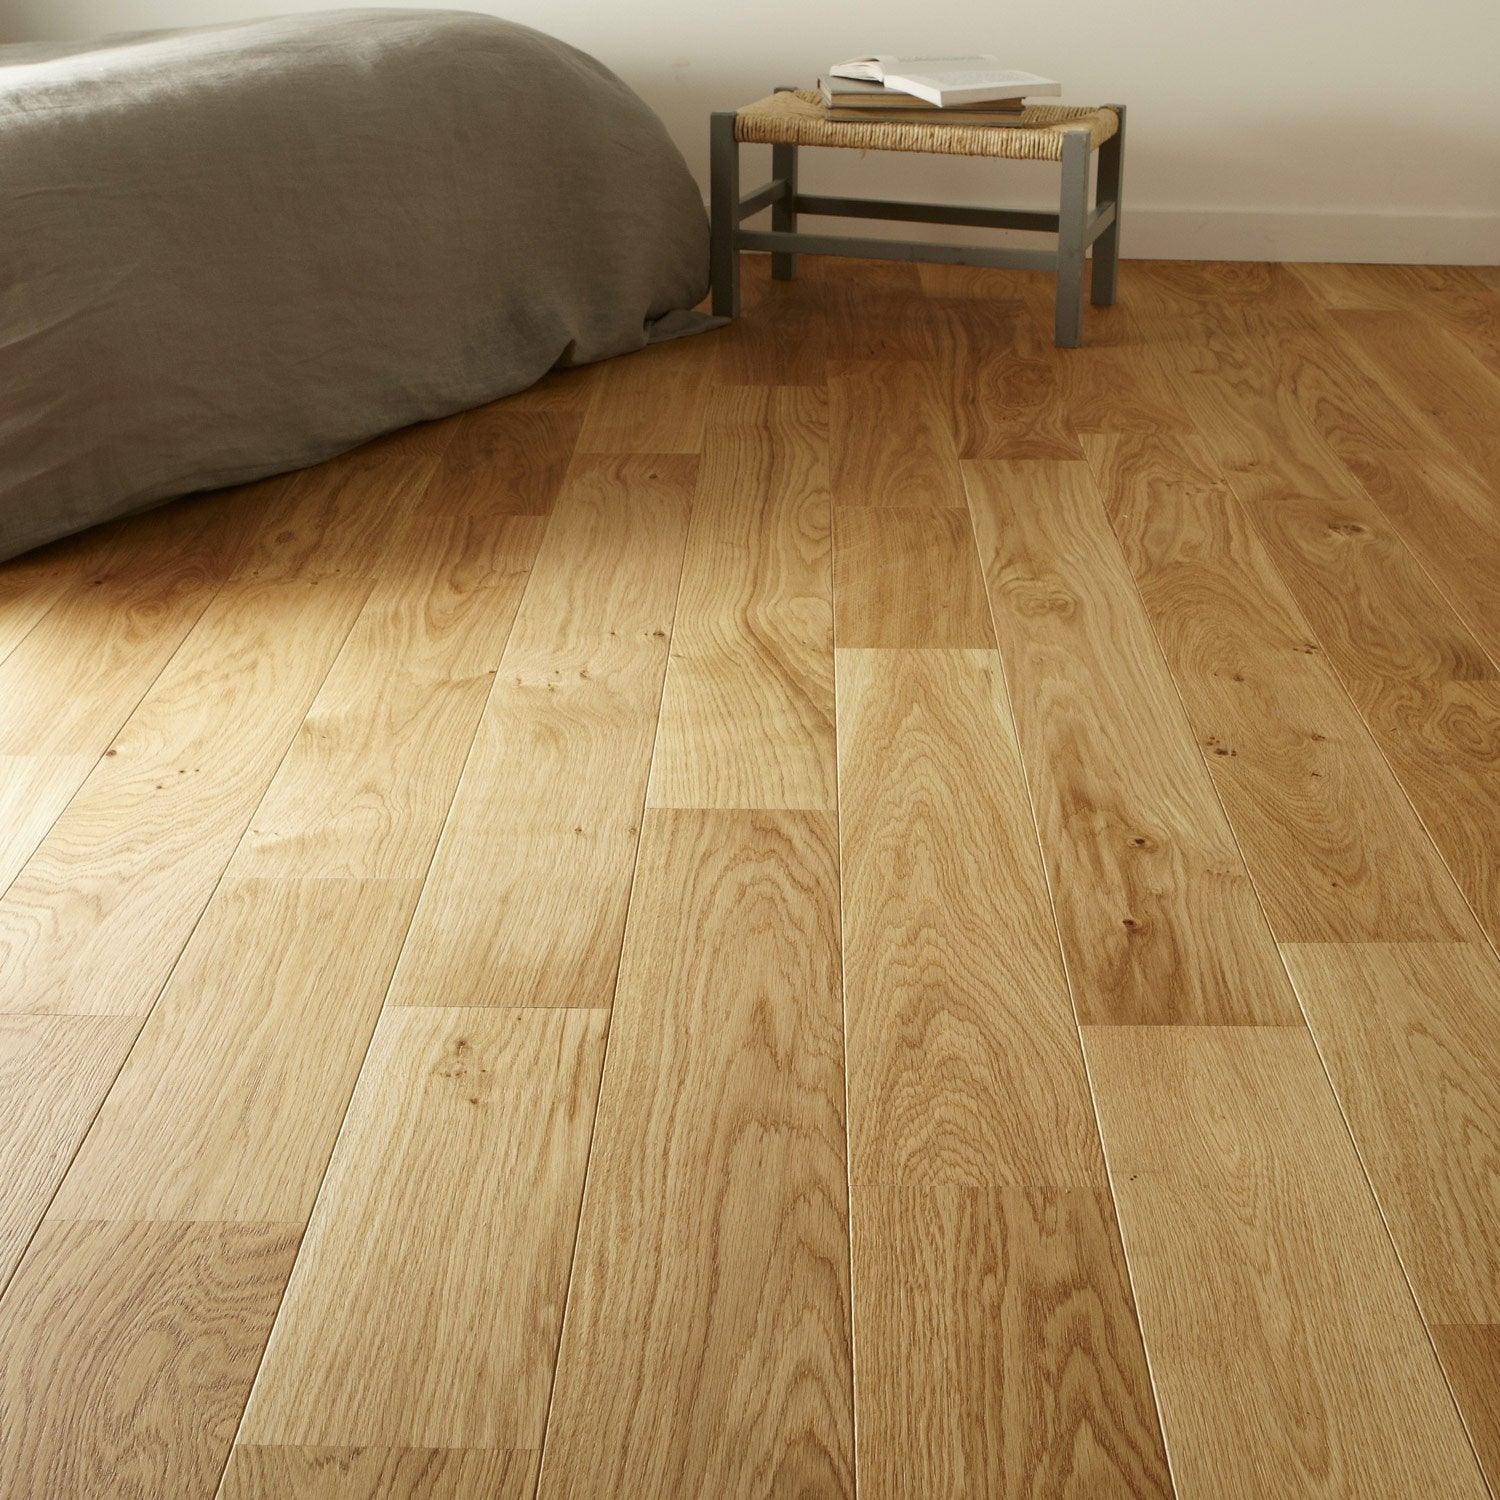 Parquet contrecoll ch ne blond vitrifi l broceliande for Carrelage imitation parquet leroy merlin